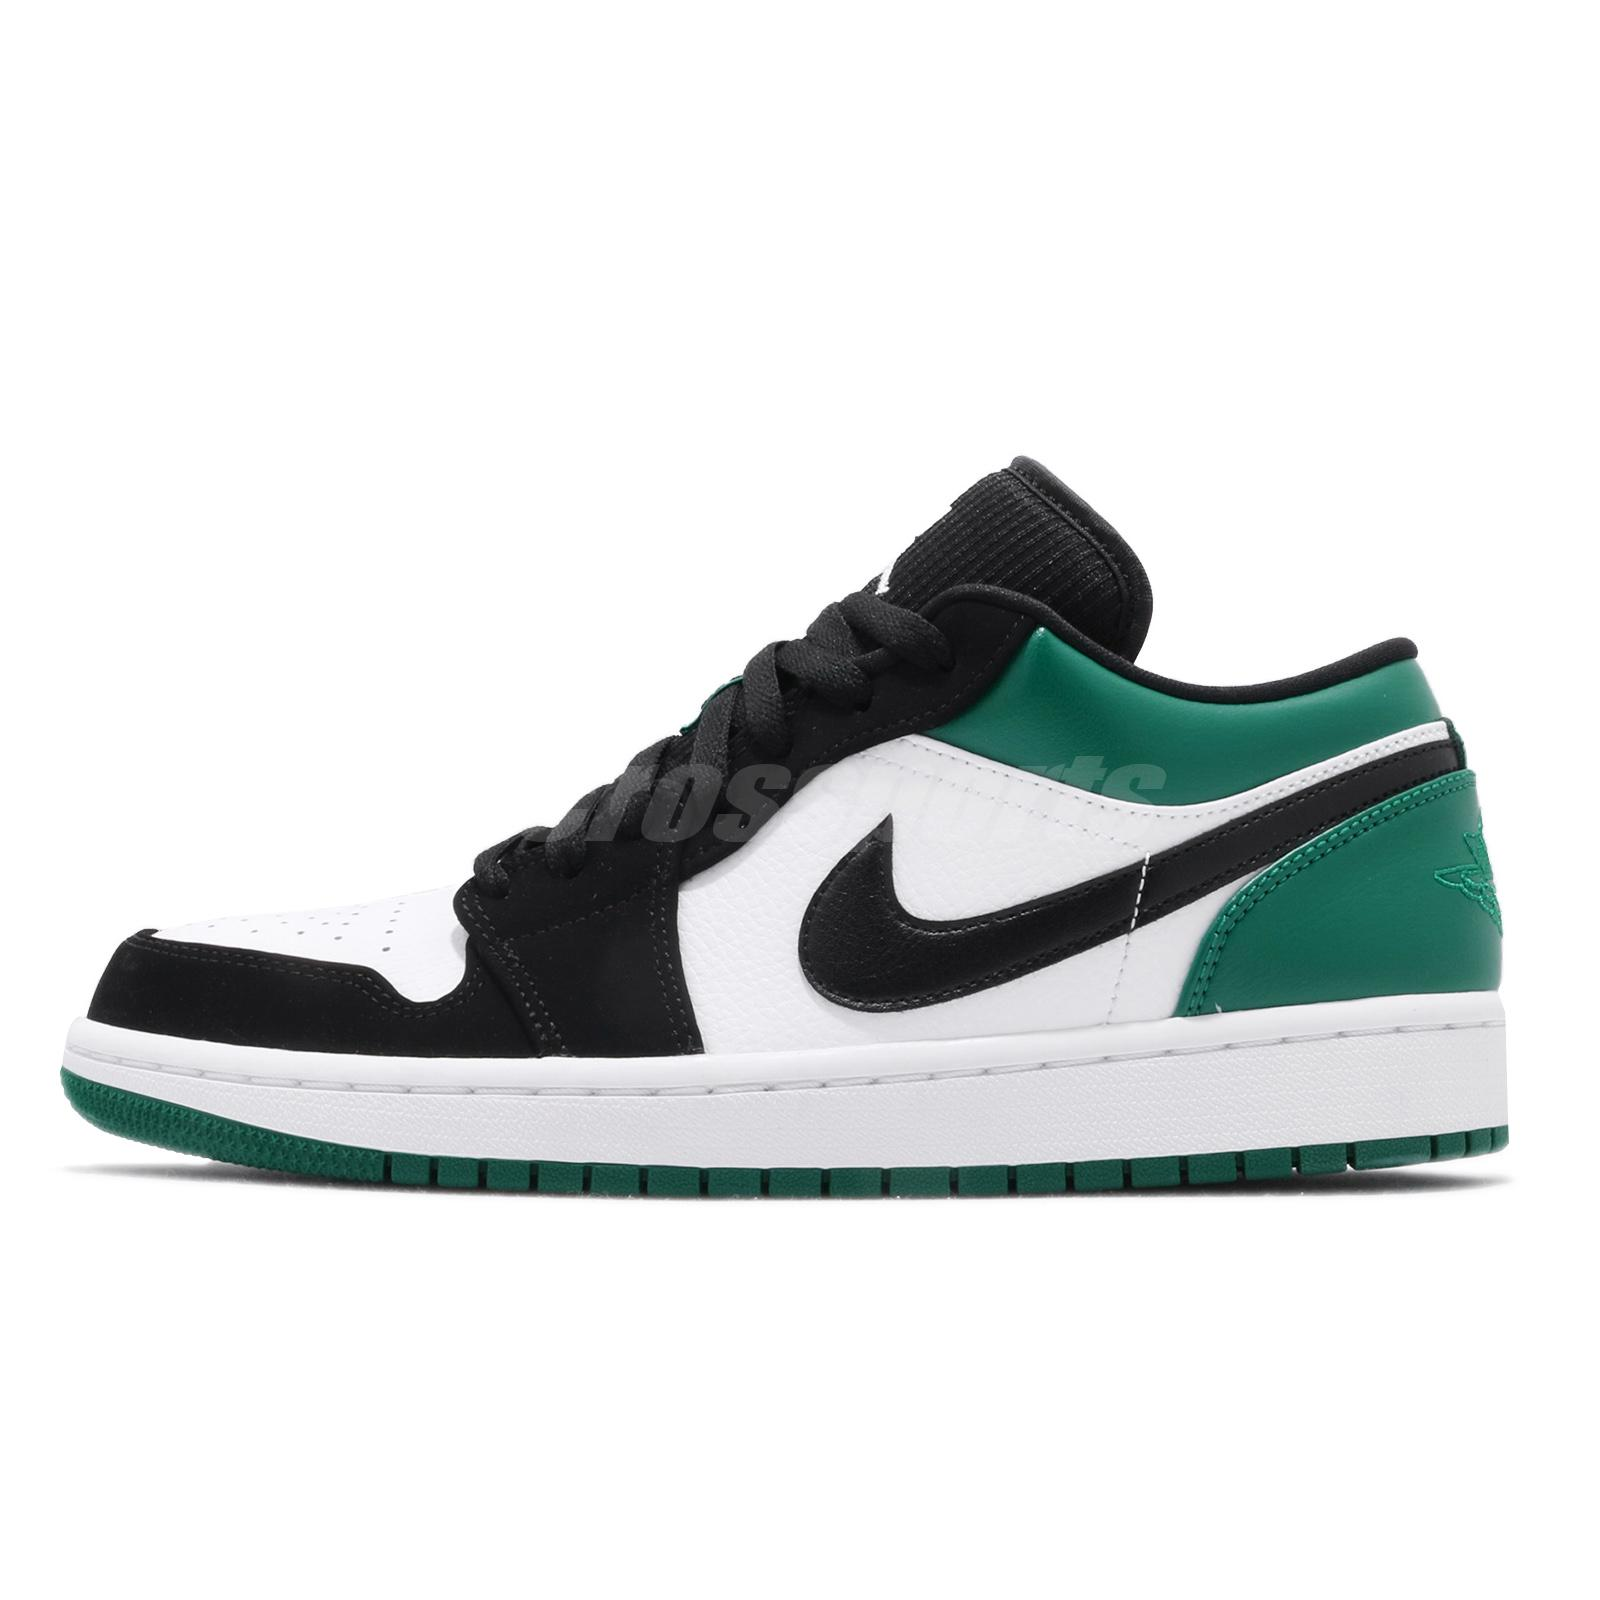 a7992ee3081ecd Nike Air Jordan 1 Low I AJ1 Mystic Green White Black Men Shoe Sneaker 553558 -113